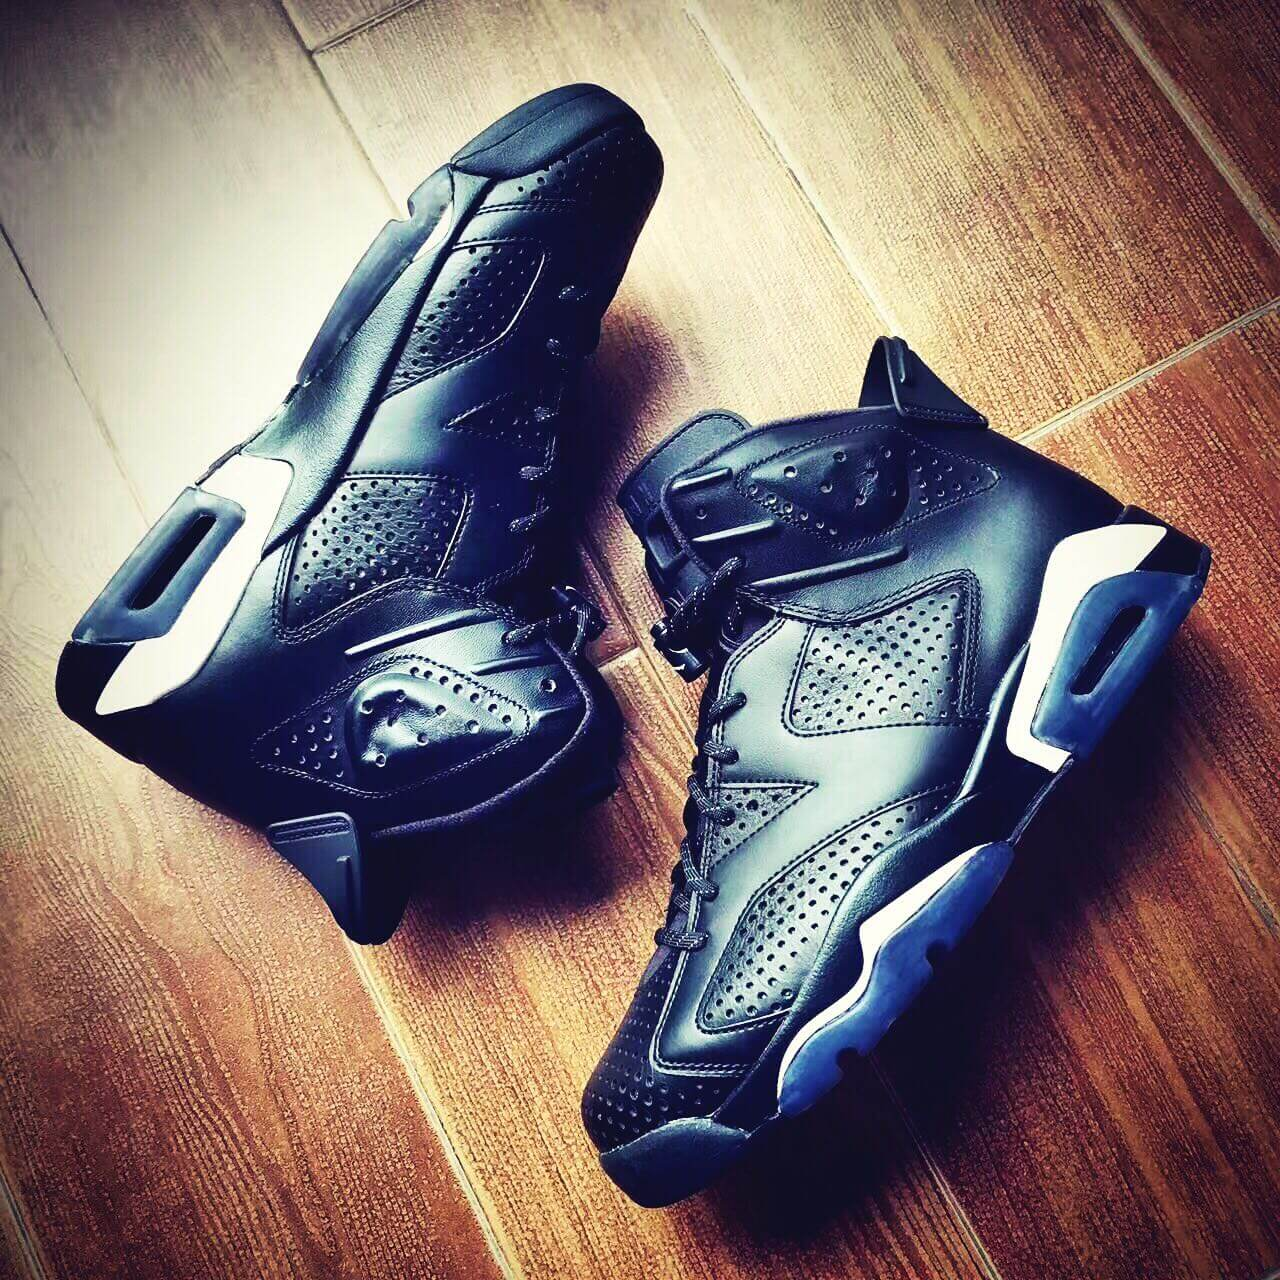 66eea53d5d8 Preview Of The Nike Air Jordan 6 Retro Black Cat New Nike Air Jordan 6 VI  Retro Black Cat 384664 020 ...